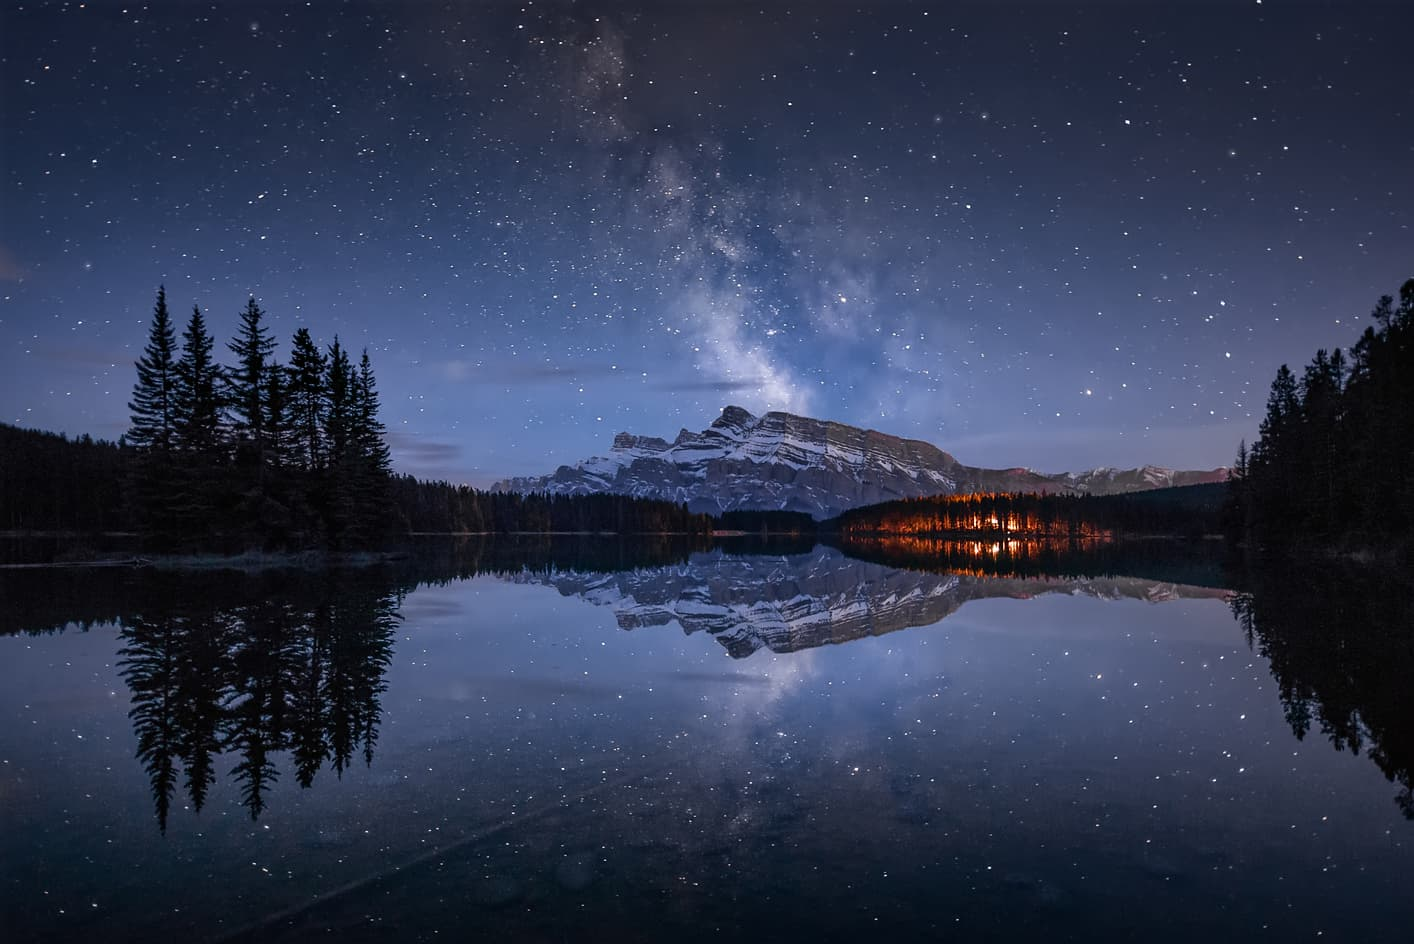 Milky way two jack lake banff canada alberta mirror pines sky photography night banff things you cannot miss at the canadian rockies